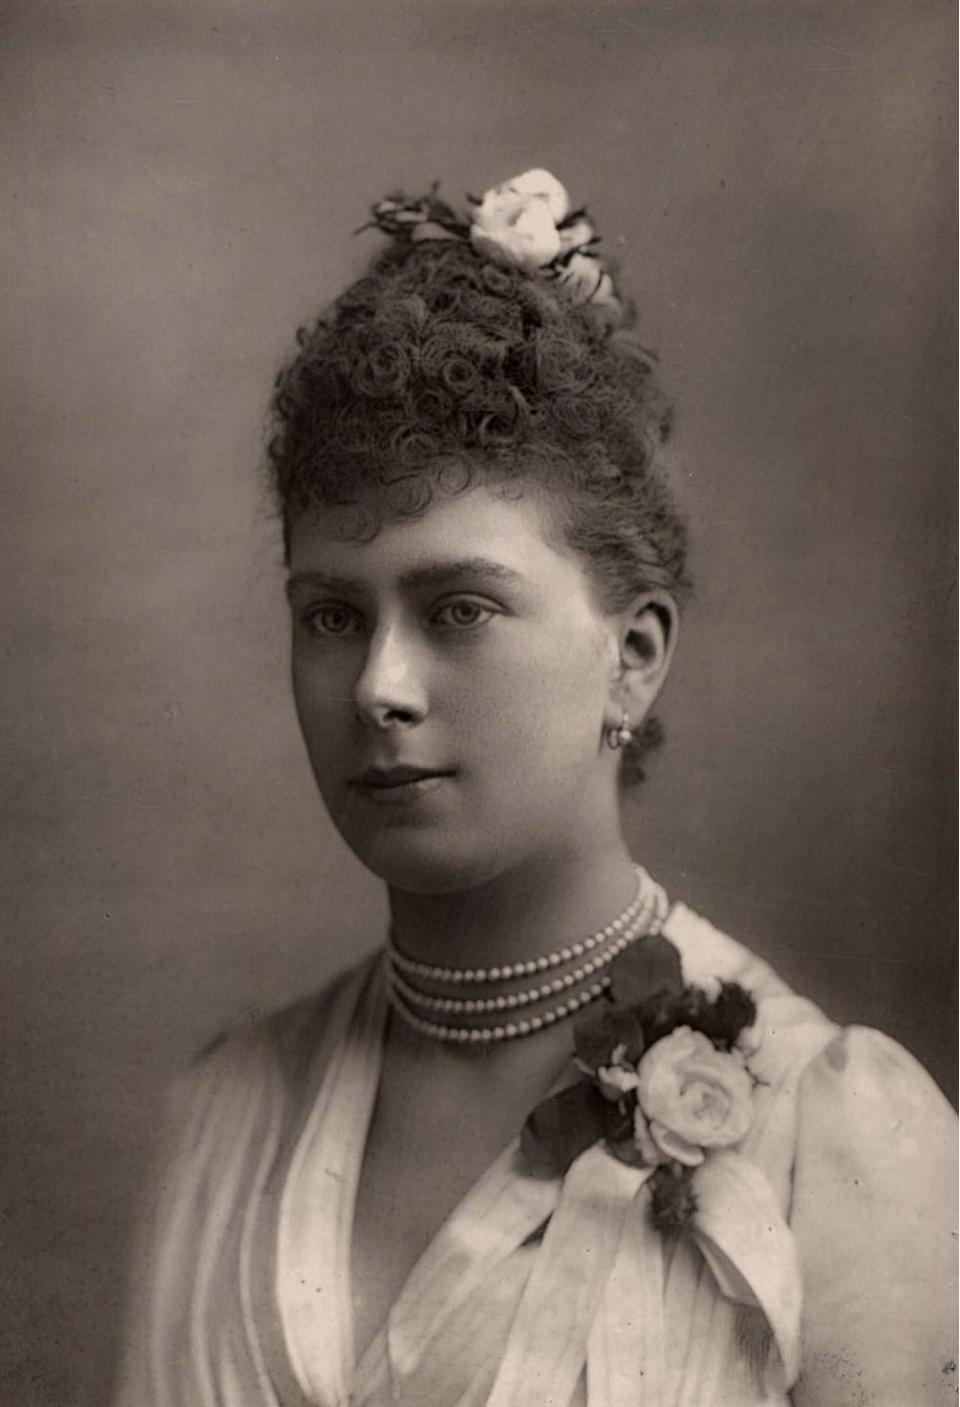 "<p>While their engagement was announced in the garden of Sheen Lodge in 1893, the details of Queen Mary's engagement ring remains unknown. Historians have been unable to find a record of or track down a ring belonging to the Queen, who reigned from 1910 until 1936, and it's <a href=""https://www.thehistorypress.co.uk/articles/royal-engagement-rings-through-the-centuries/"" rel=""nofollow noopener"" target=""_blank"" data-ylk=""slk:referred to as the lost ring"" class=""link rapid-noclick-resp"">referred to as the lost ring</a>. The Queen did, however, leave behind the Queen Mary Bandeau Tiara, which she wore on her wedding day and was lent to the Duchess of Sussex on her wedding day in 2018. </p>"